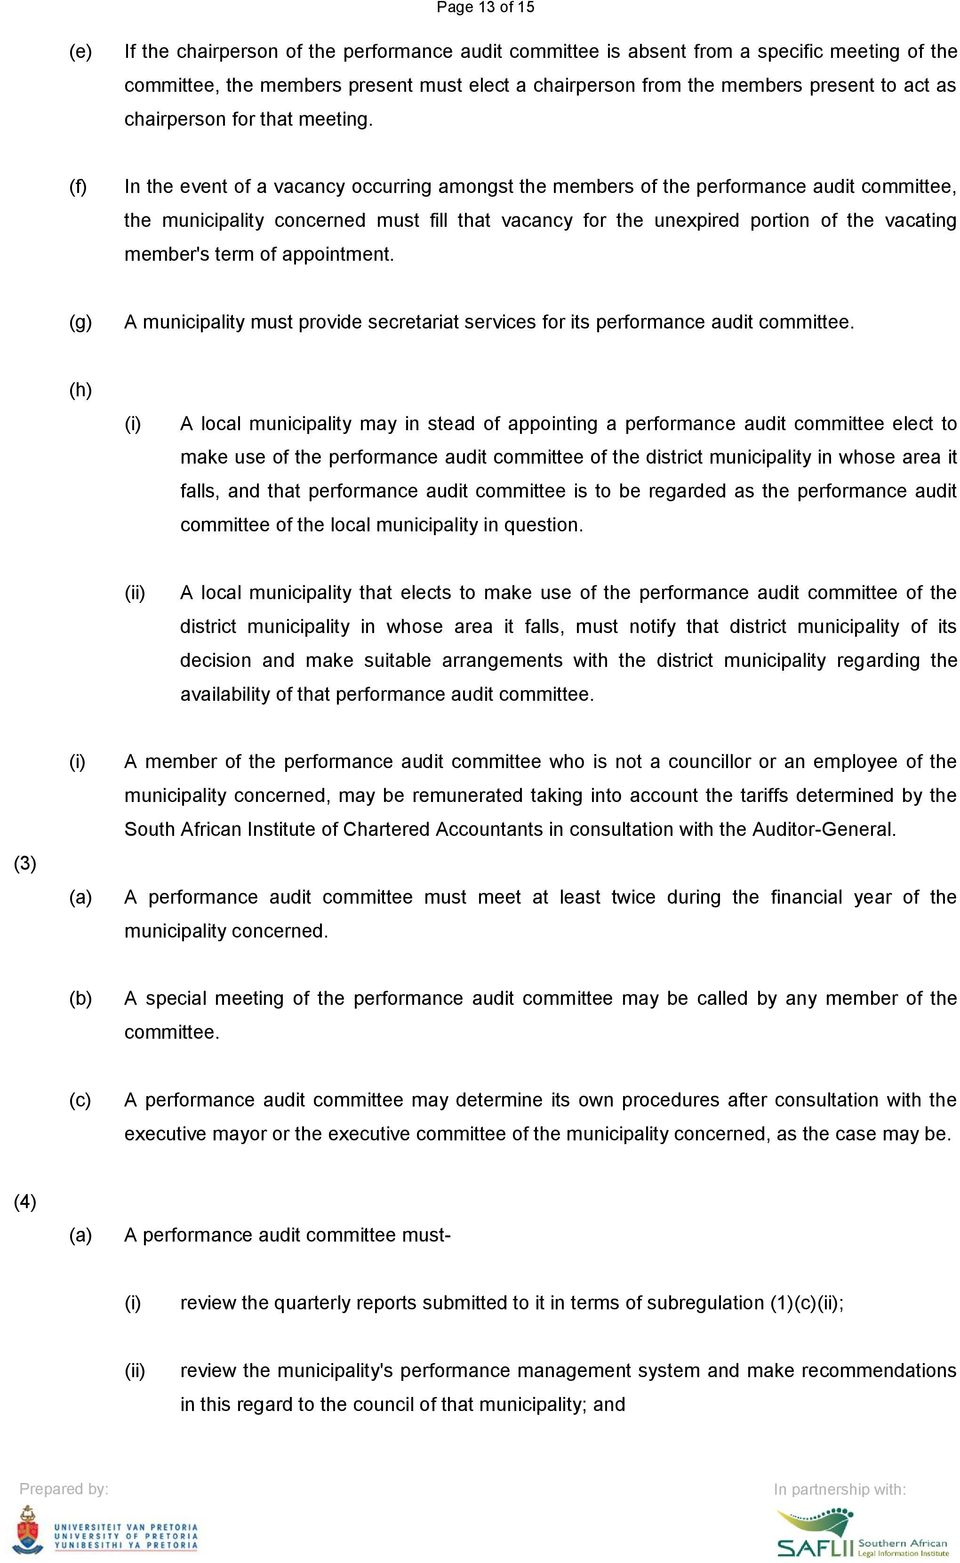 (f) In the event of a vacancy occurring amongst the members of the performance audit committee, the municipality concerned must fill that vacancy for the unexpired portion of the vacating member's